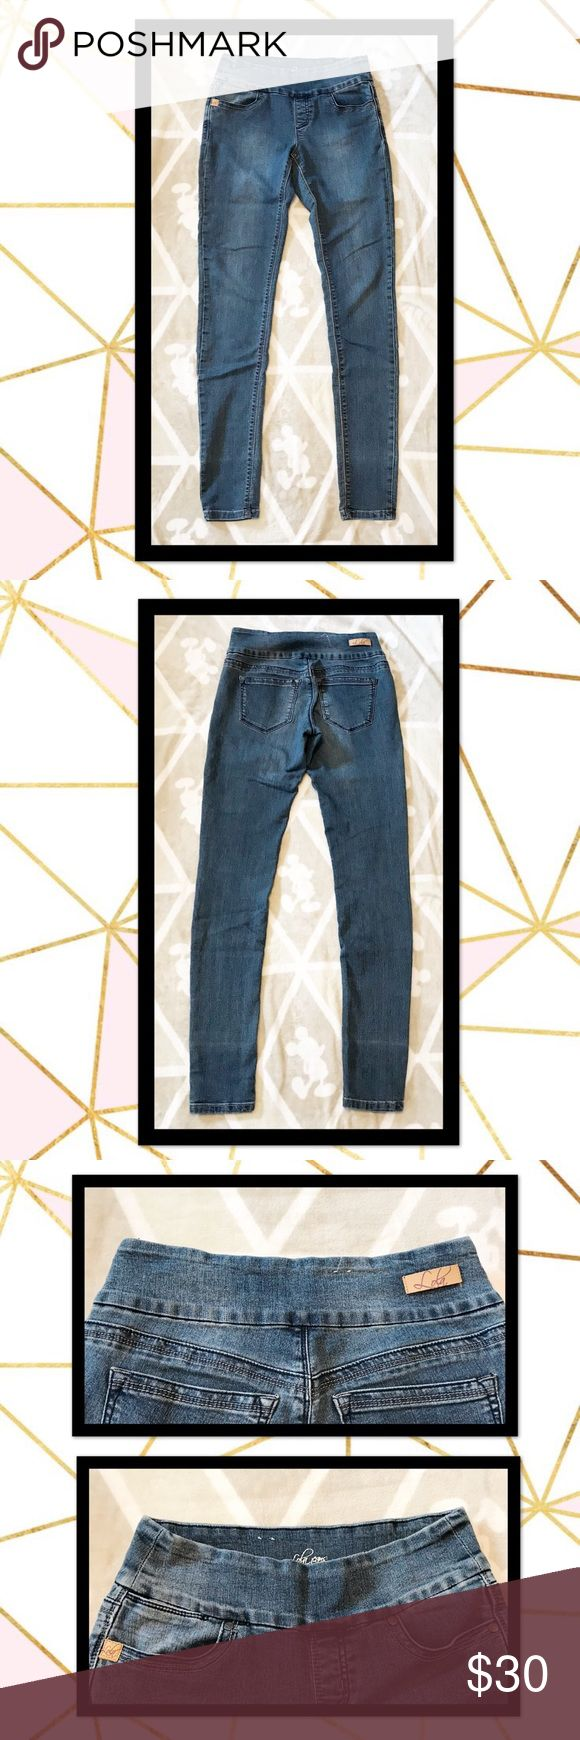 Lola jeans - Anna Skinny Jeans The Anna mid-rise pull-on skinny has an effortlessly perfect fit. Our comfy 4-way stretch fabric softly hugs your curves. You can wear them every day, and they still keep their shape.The pull-on waistband keeps you nice and flat in the front, with no buttons or belt-loops.  ⭐️ Size 2 ⭐️ Excellent used condition ⭐️ Pull On style ⭐️ 4-Way Stretch ⭐️ Faux fly and five-pocket styling ⭐️ Skinny leg jean with wide pull-on waist ⭐️ Tummy slimming front panel…